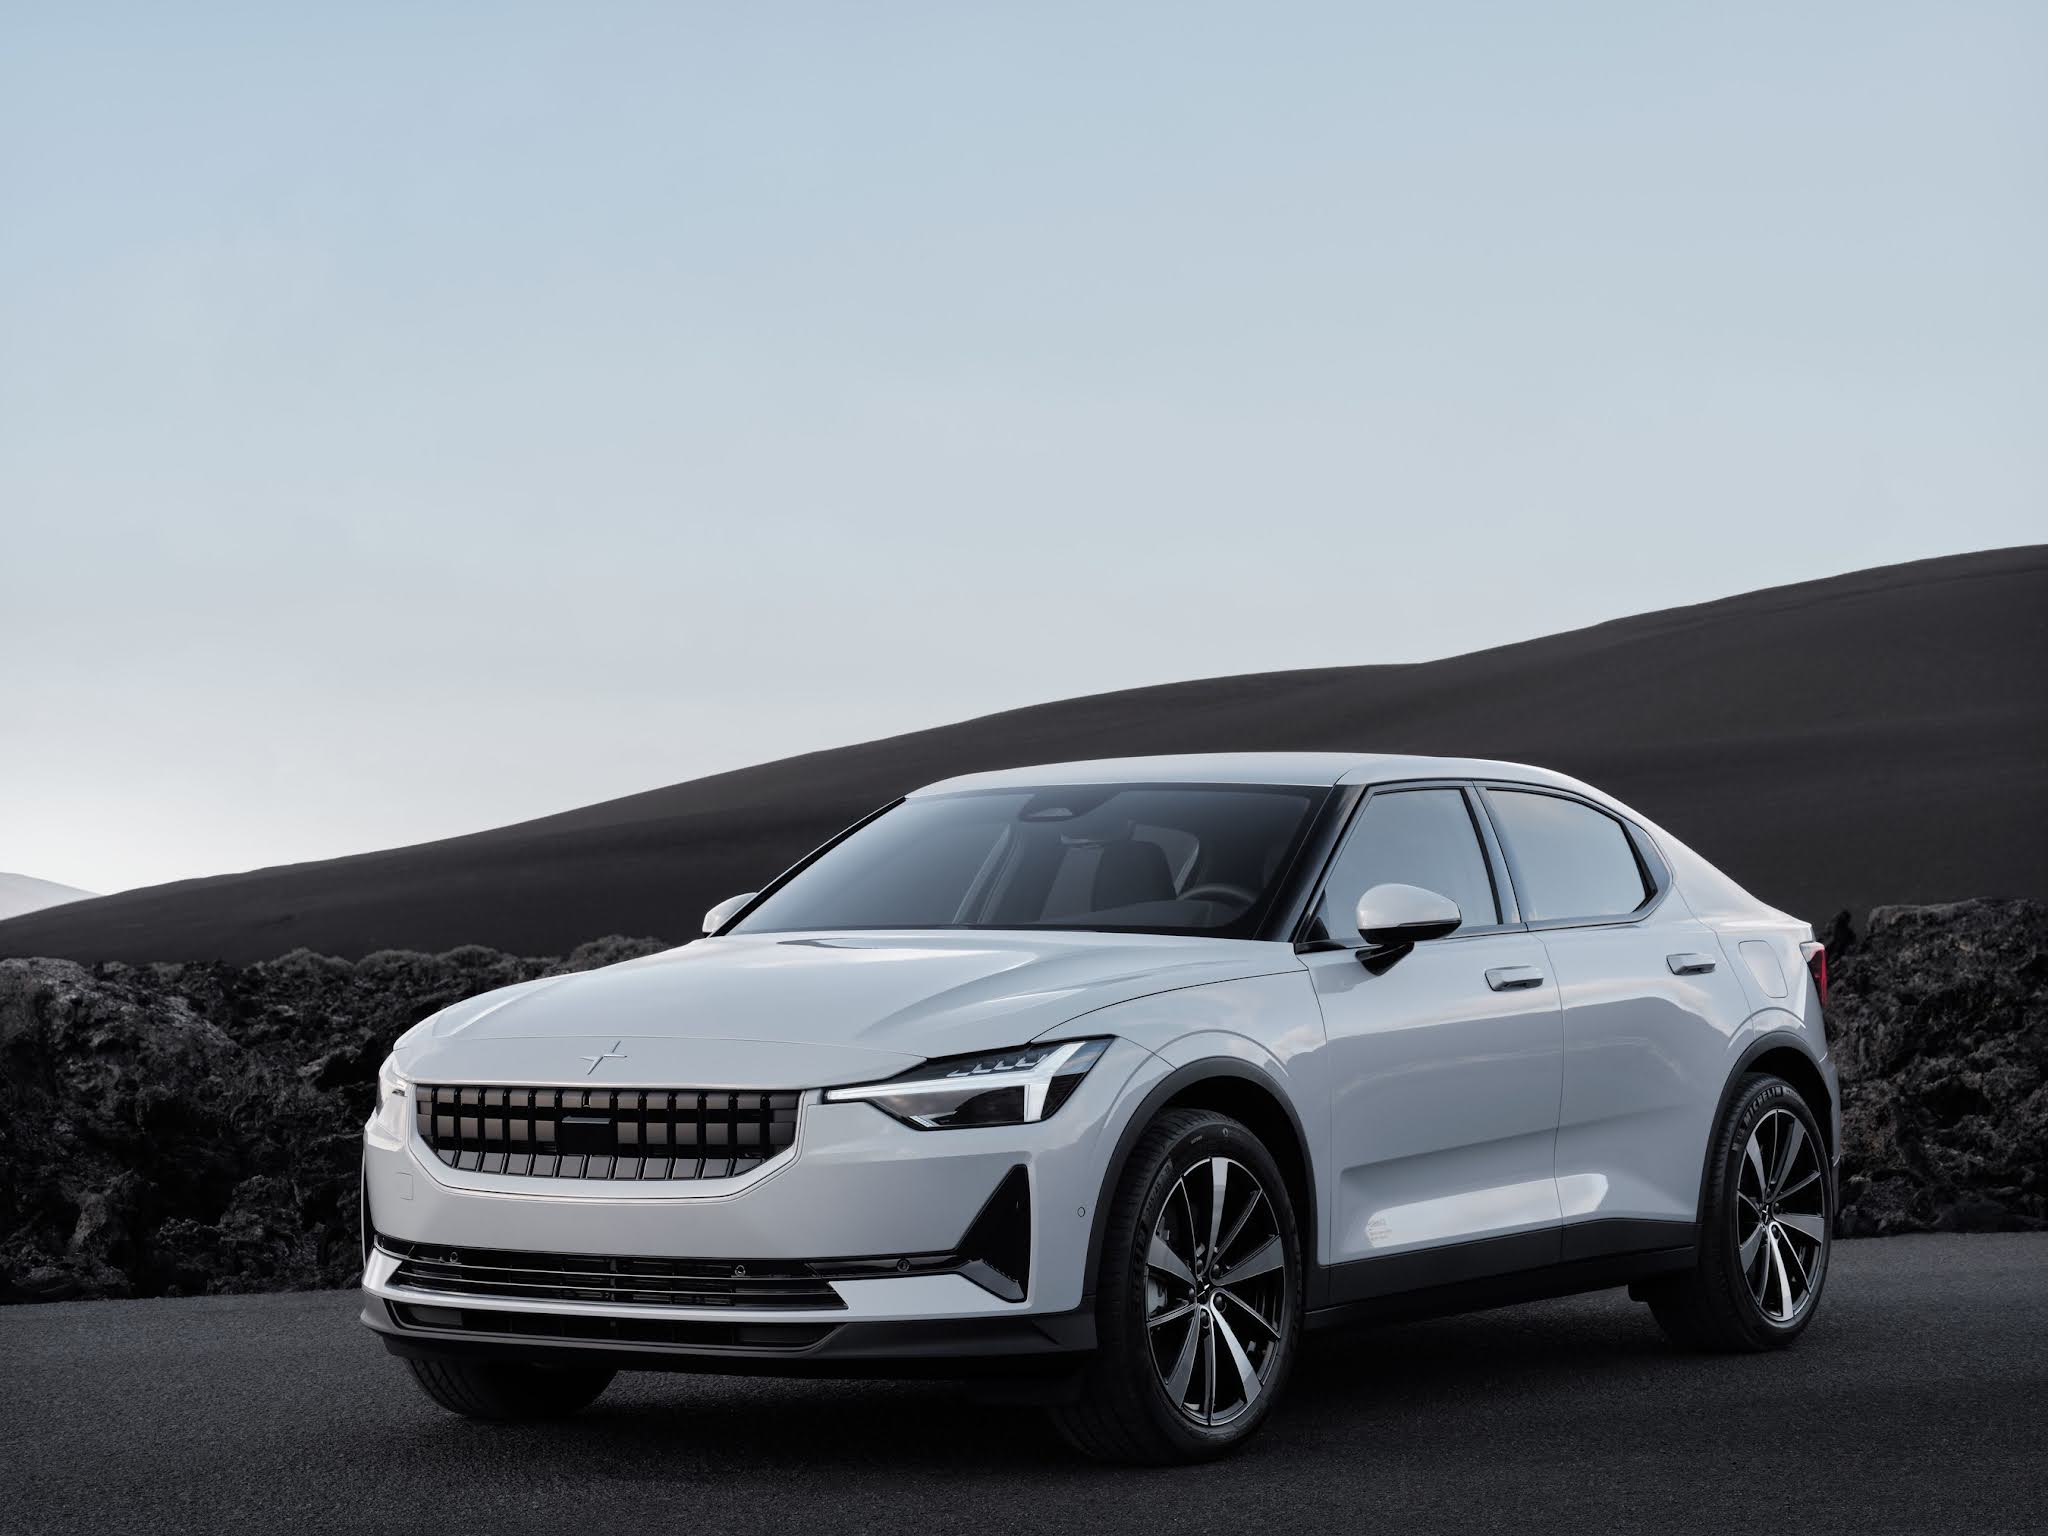 2022 Polestar 2 electric car features increased range, bespoke options, and best-in premium segment pricing